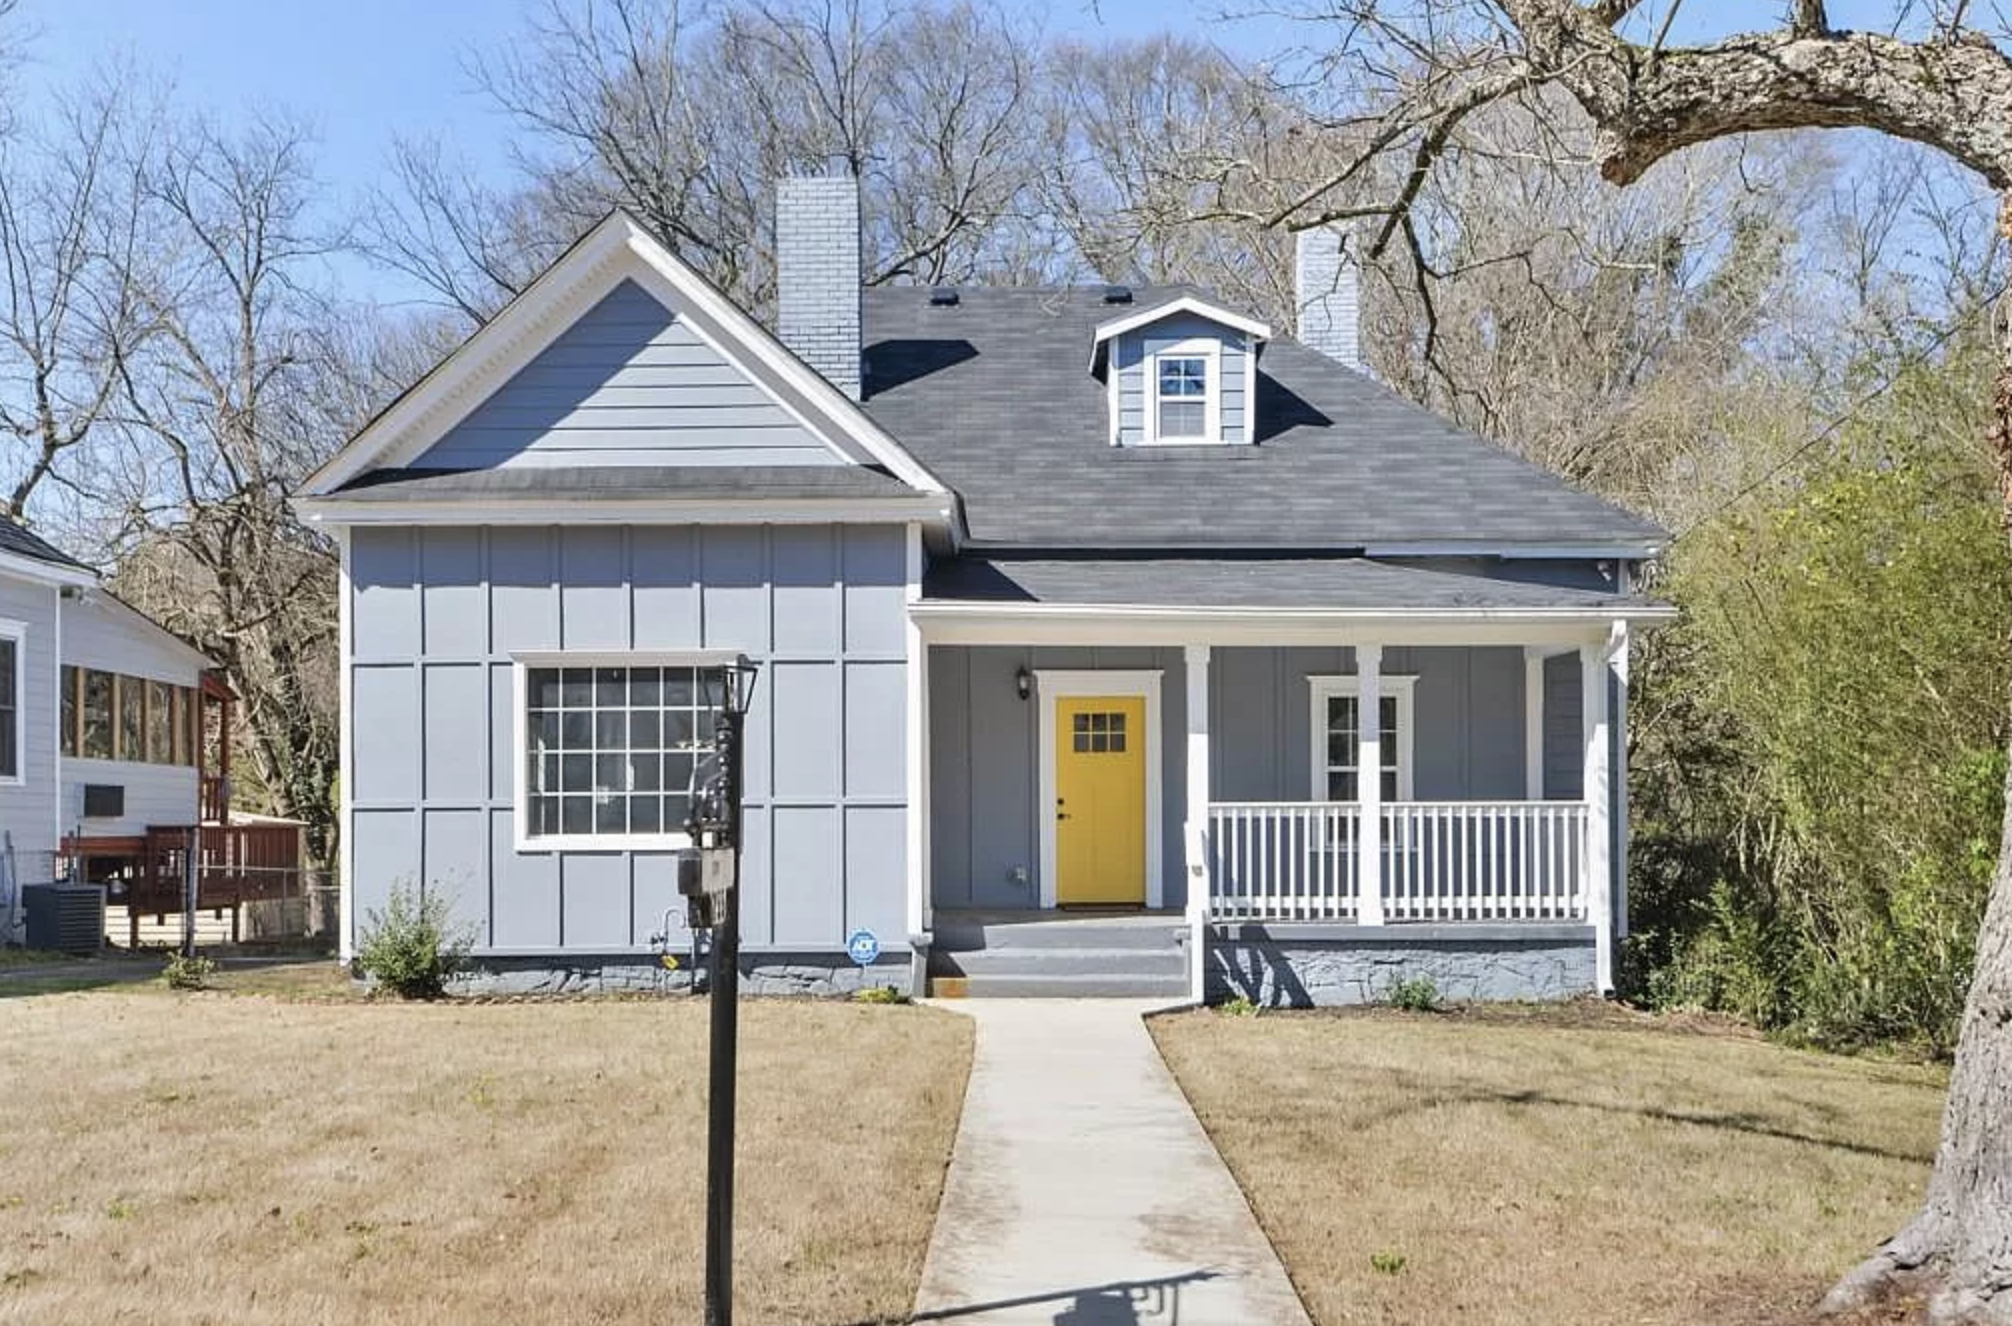 Slate gray house with yellow door and covered porch.